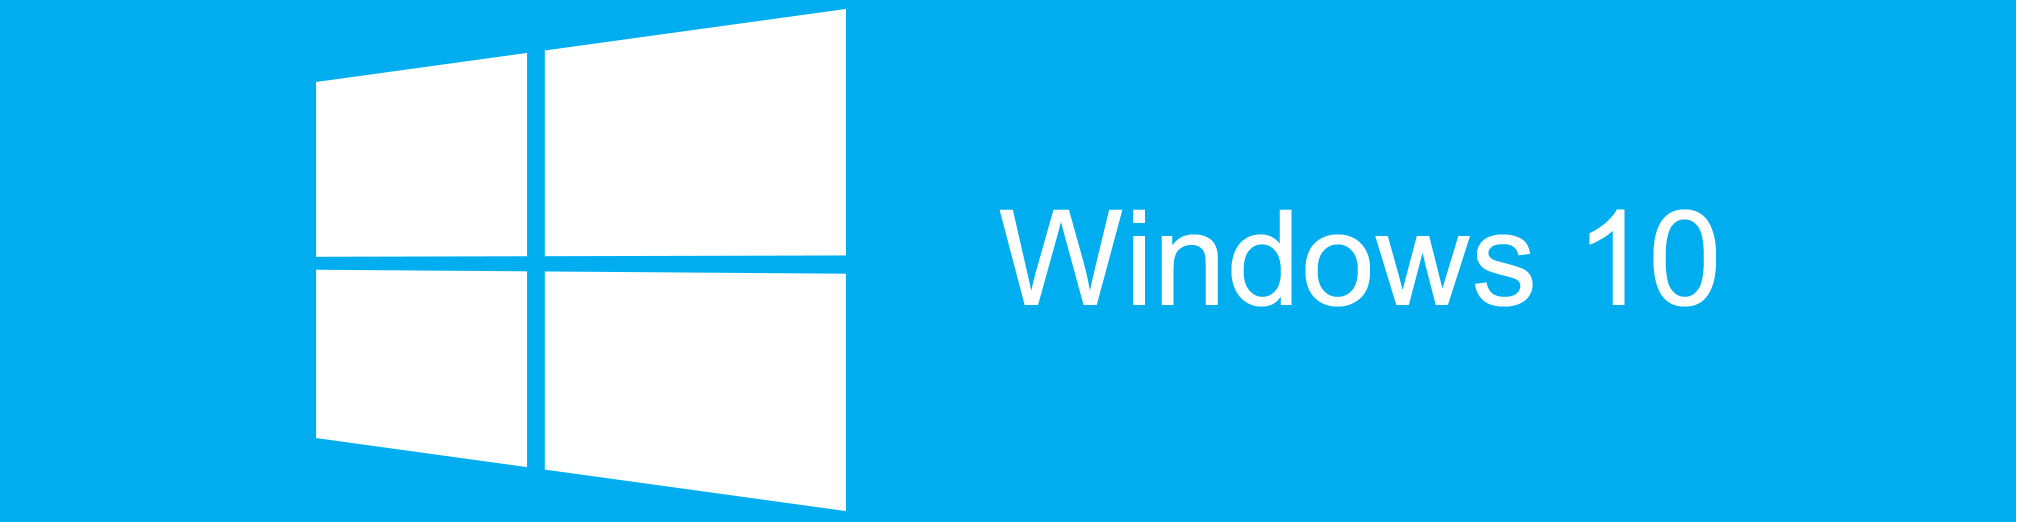 Logotipo Windows 10